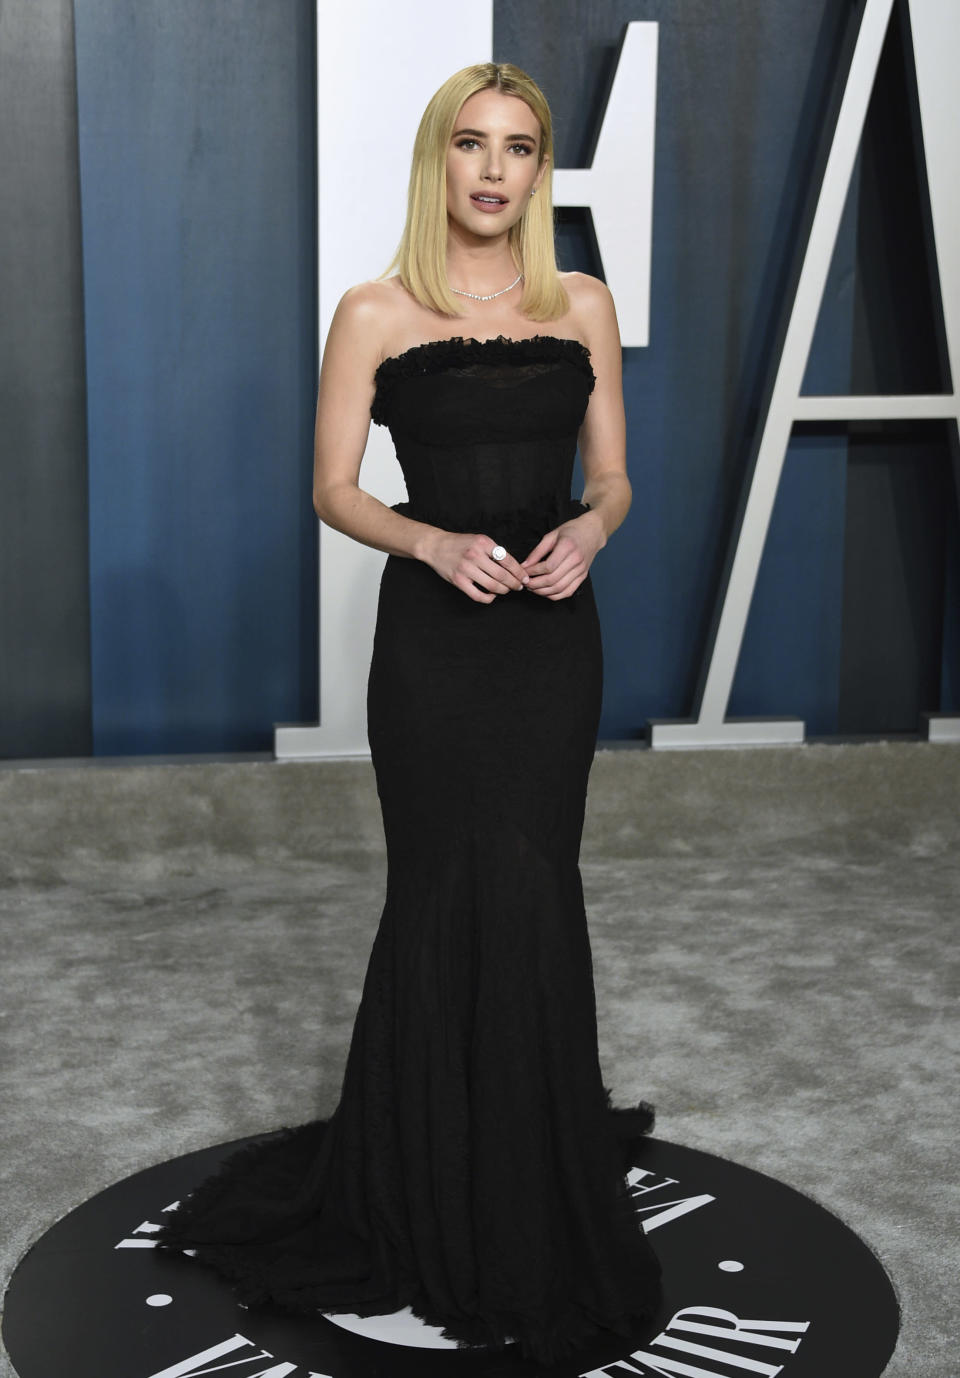 FILE - Emma Roberts arrives at the Vanity Fair Oscar Party on Feb. 9, 2020, in Beverly Hills, Calif. Roberts turns 30 on Feb. 10. (Photo by Evan Agostini/Invision/AP, File)